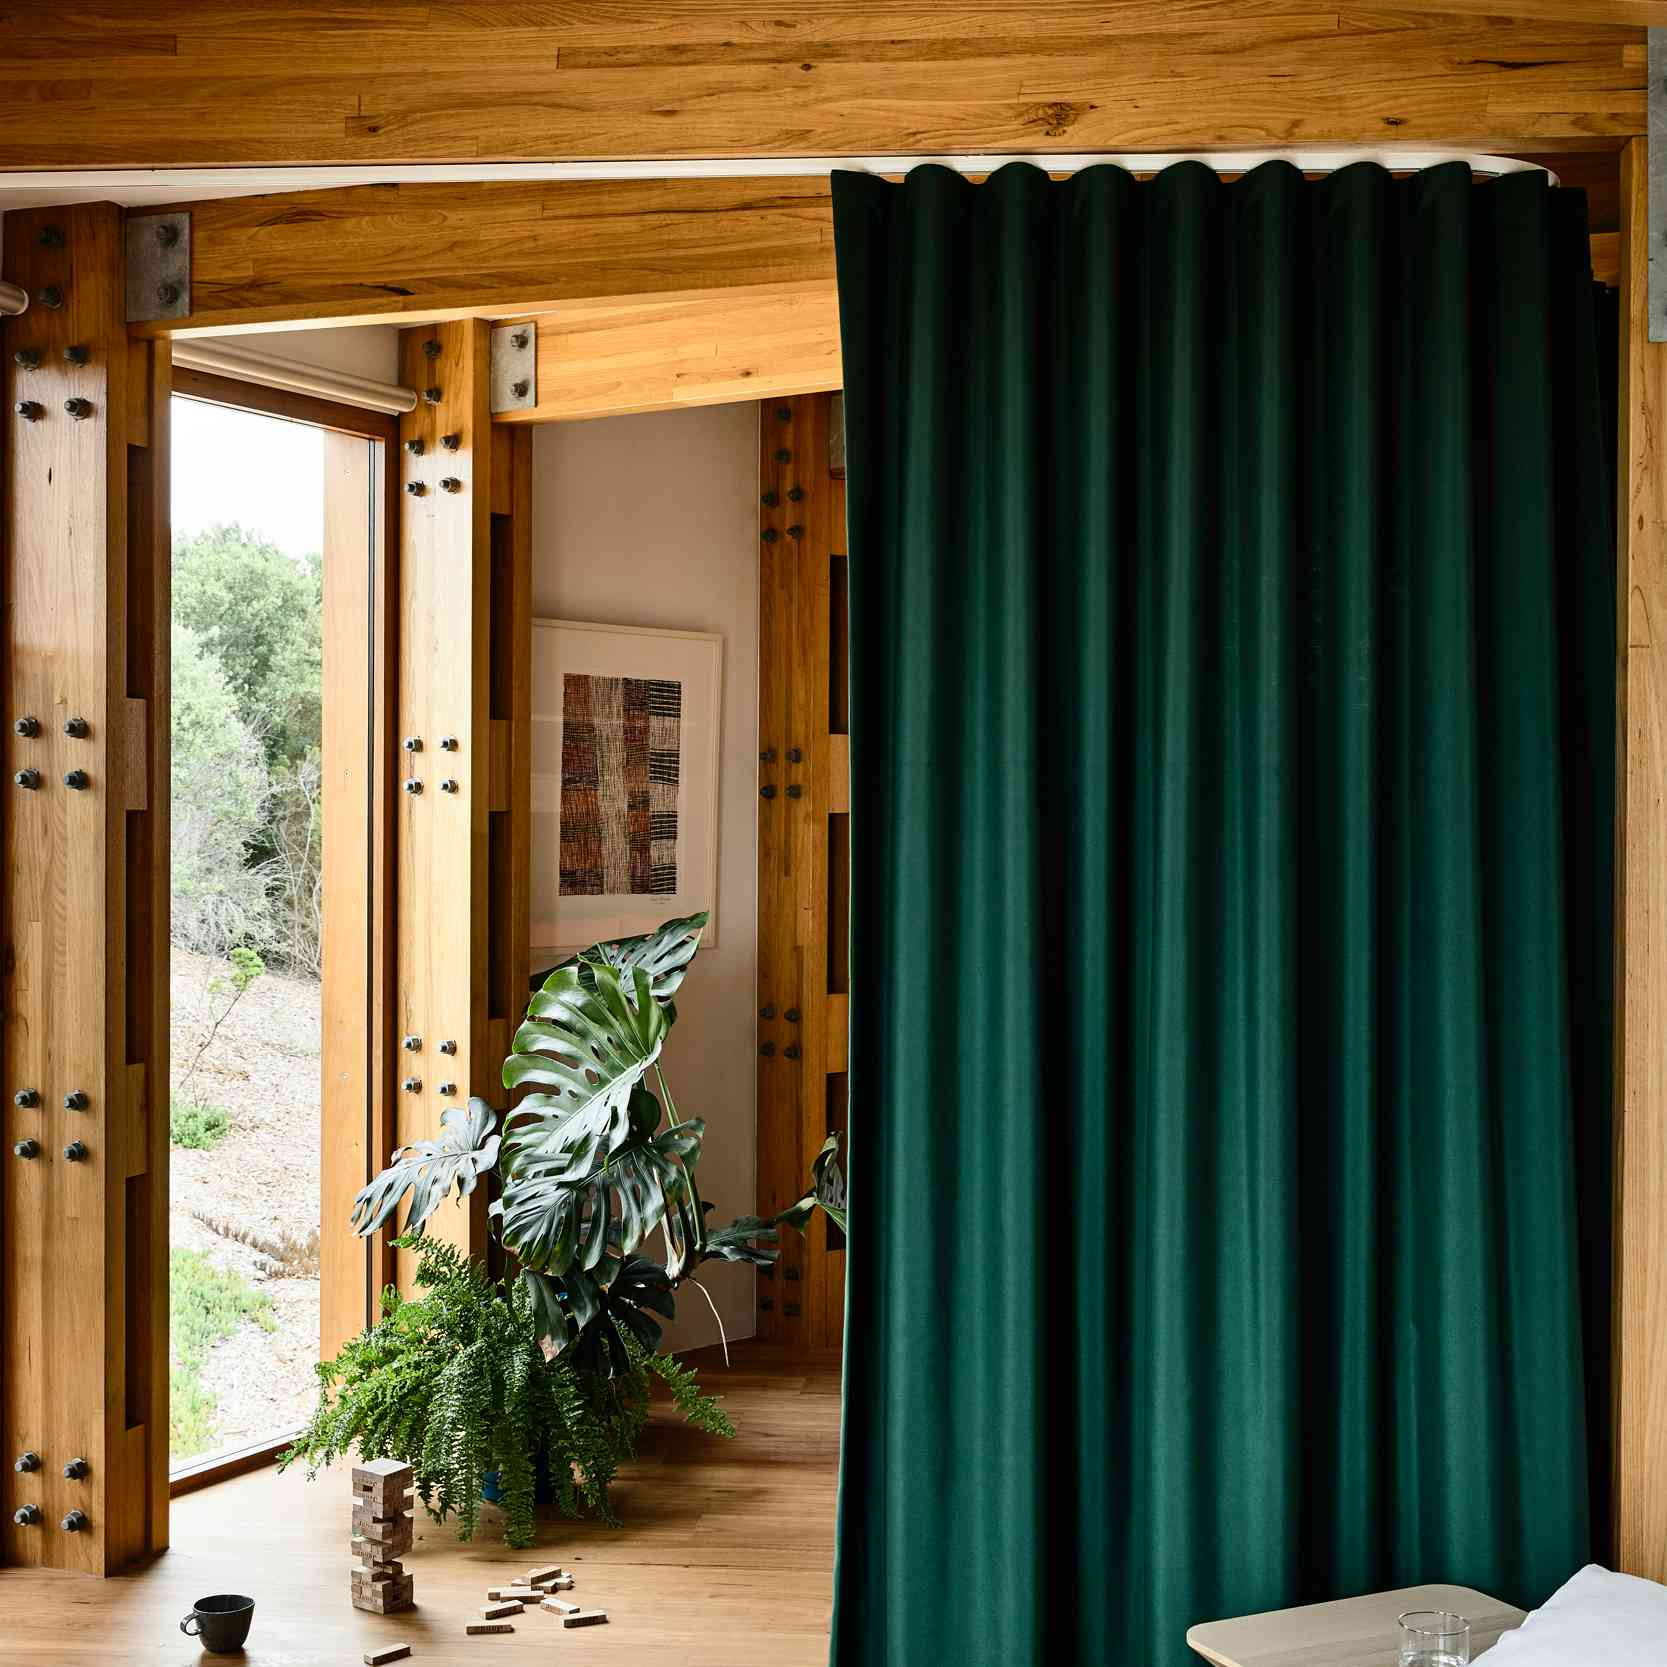 Curtains instead of doors